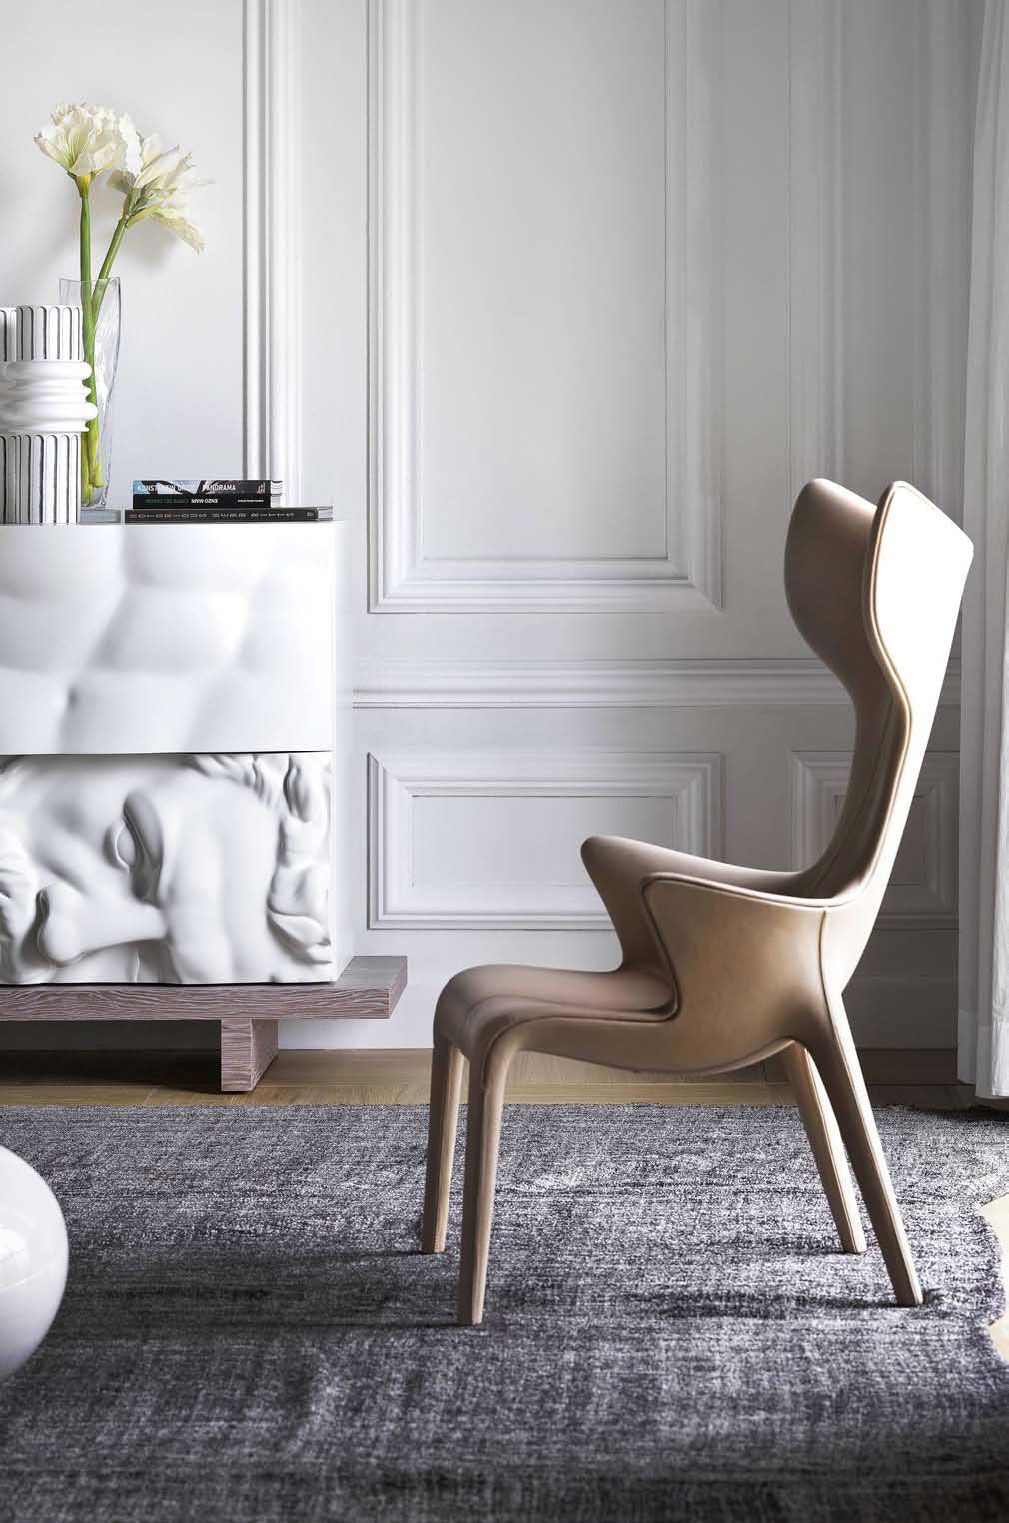 Divano Design Futuristico Lou Read Armchair Designed By Philippe Starck Eugeni Quitllet For